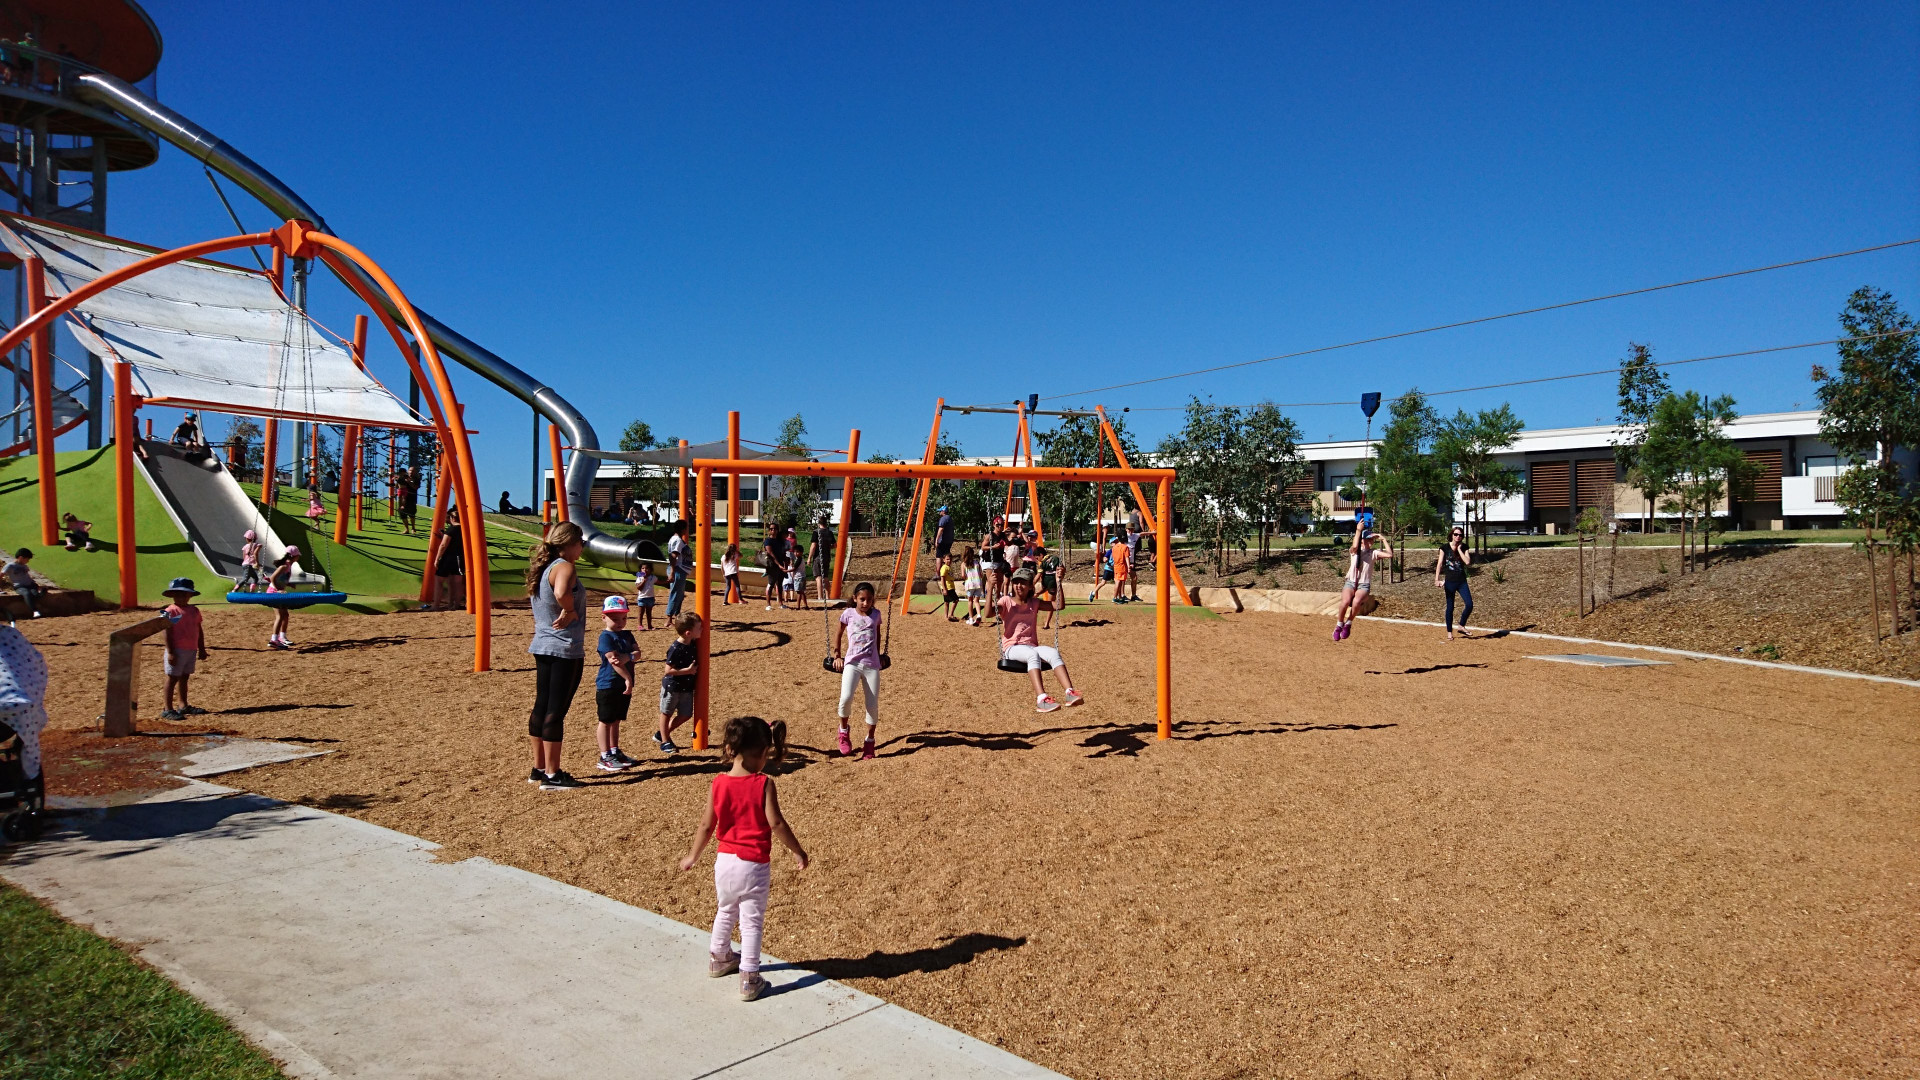 set of swings at Altrove Schofields park